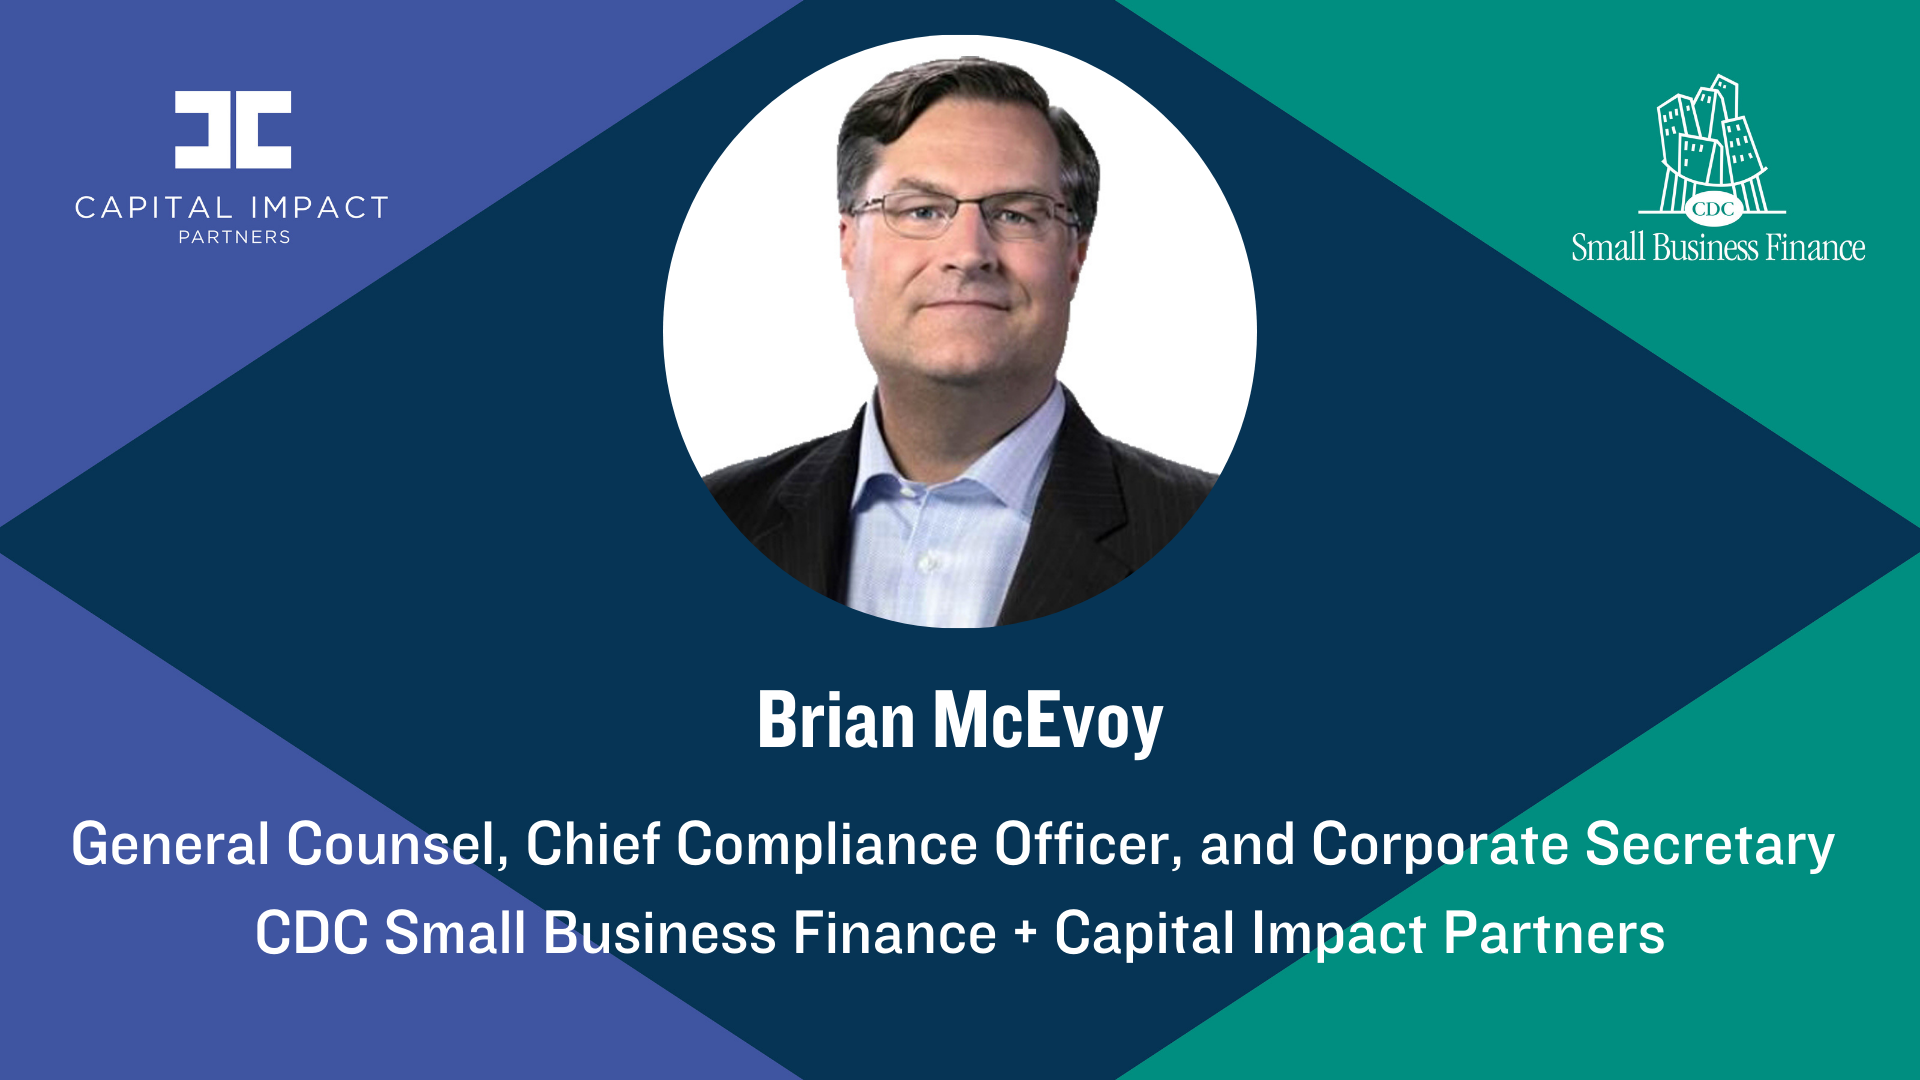 Brian McEvoy, General Counsel, Chief Compliance Officer, and Corporate Secretary